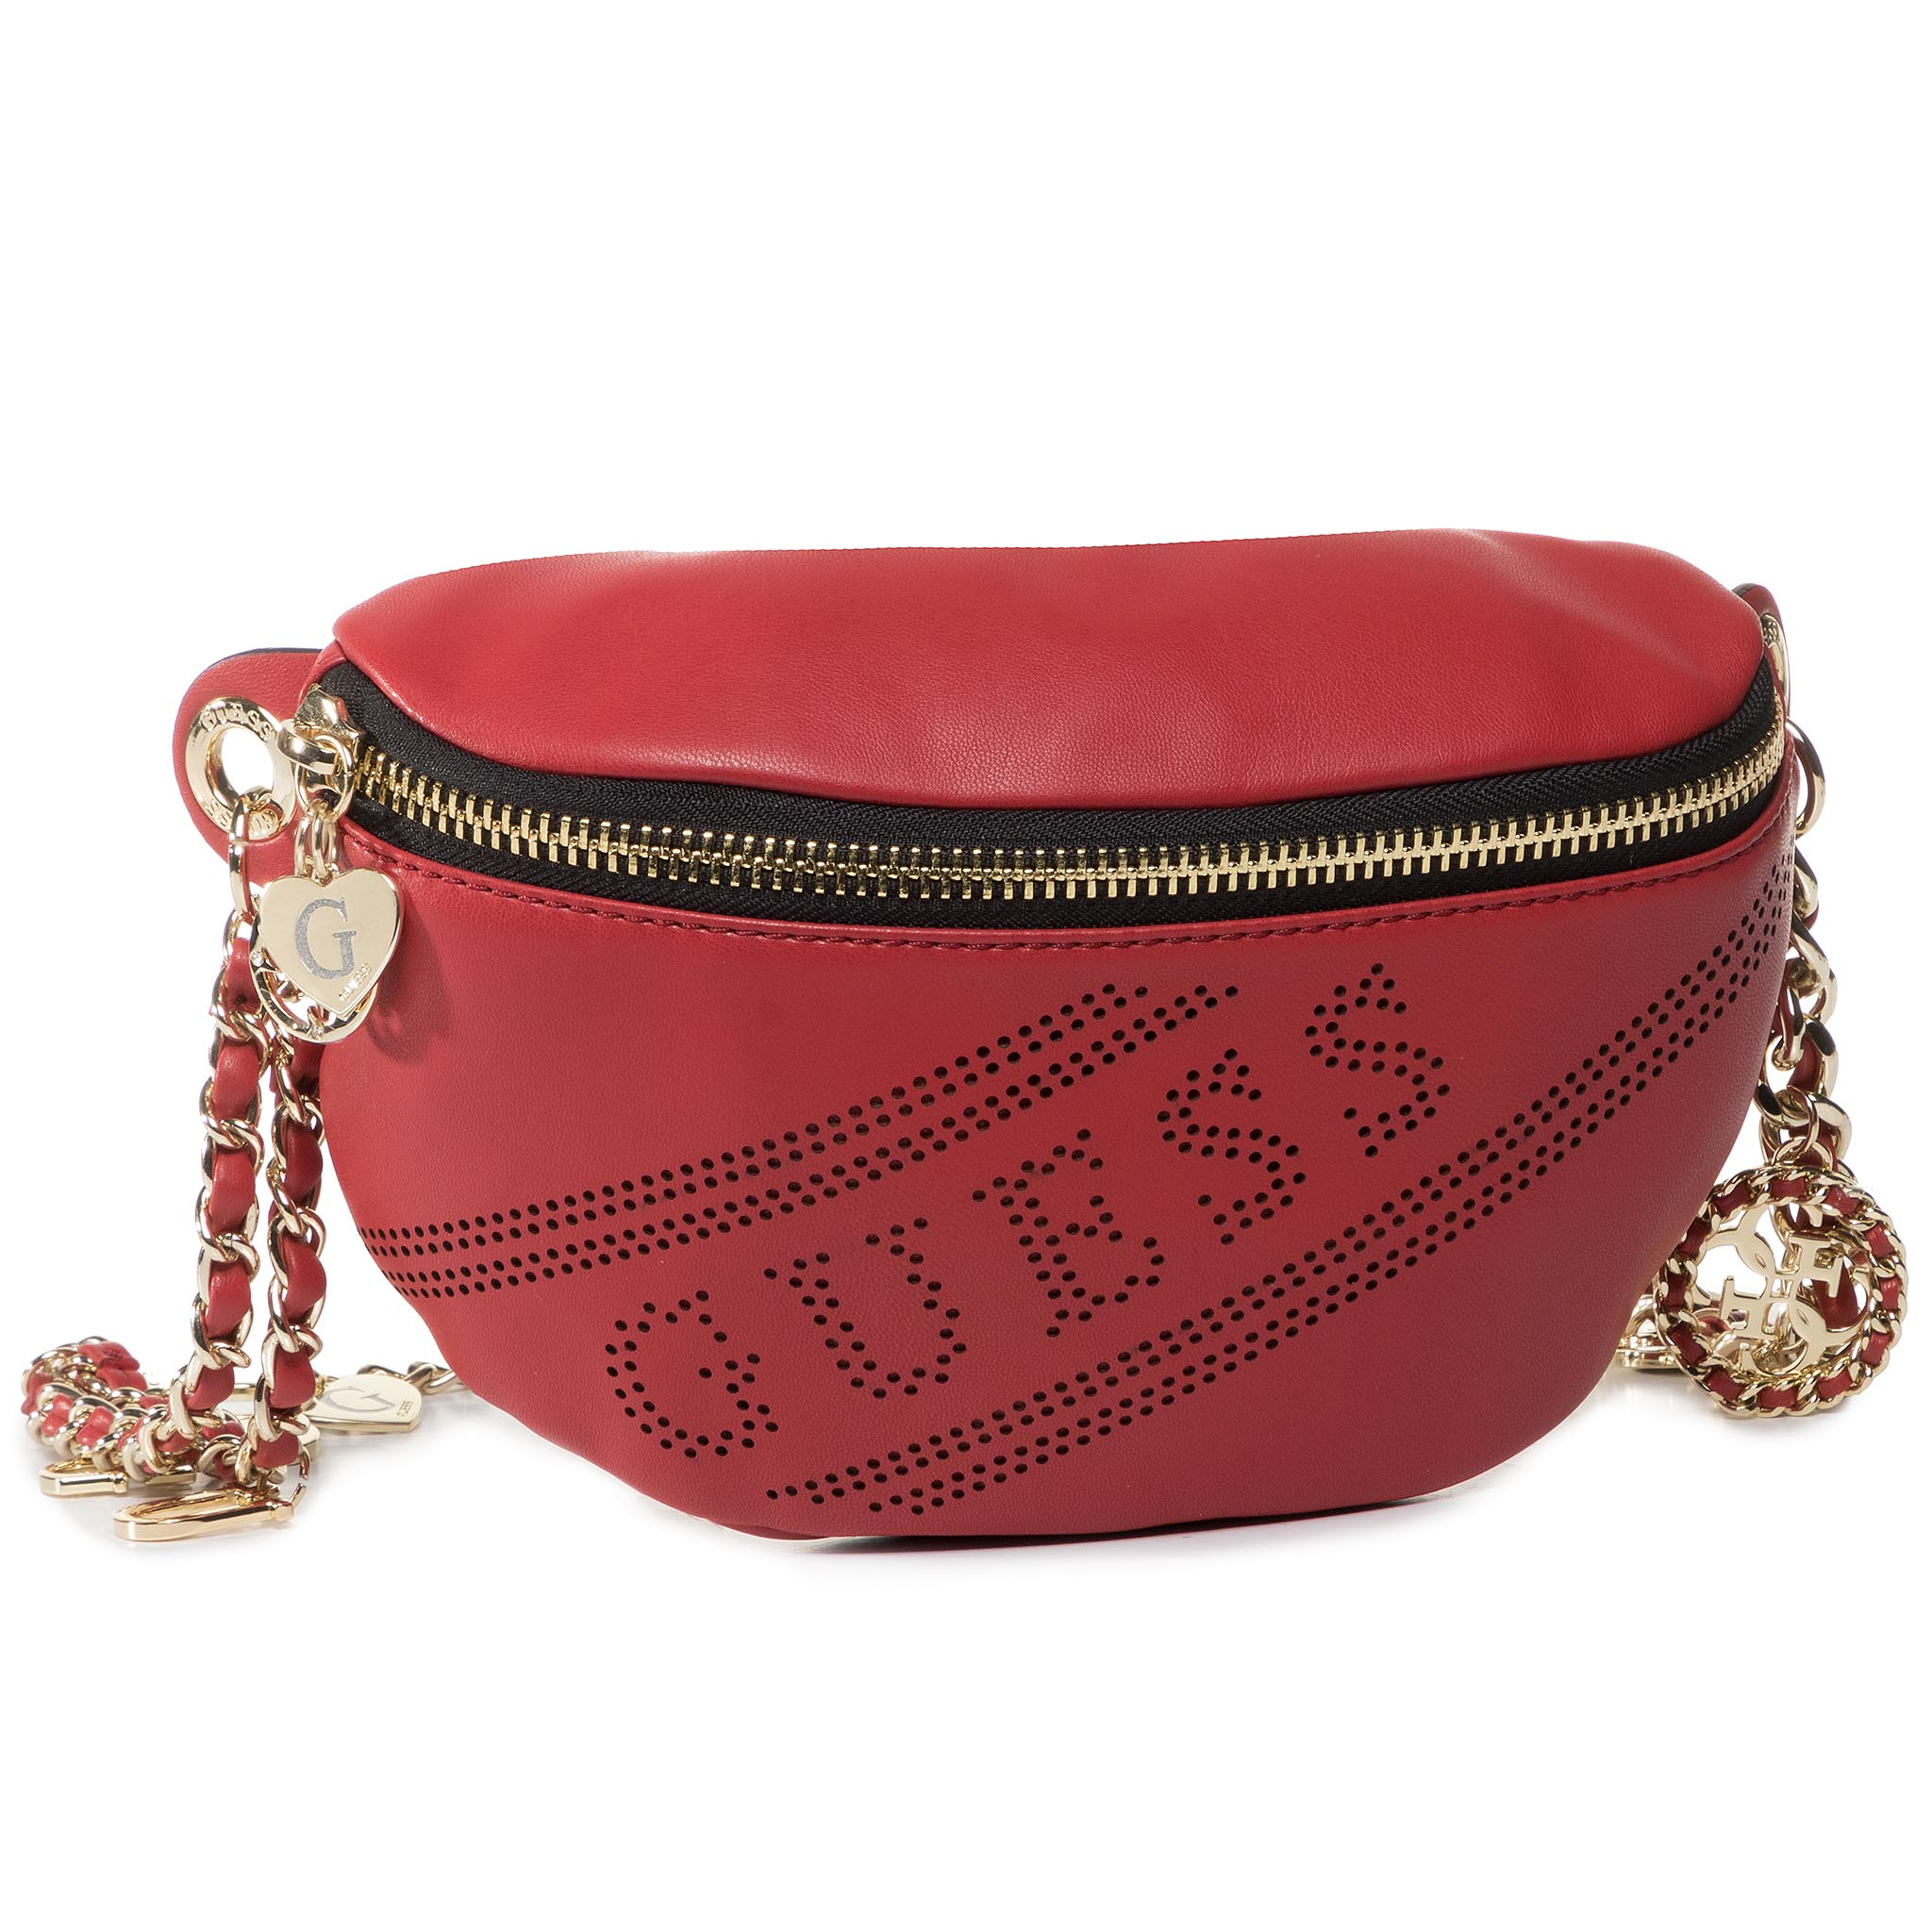 Rankinė ant juosmens GUESS - Not Coordinated Belts BW7327 P0220 RED